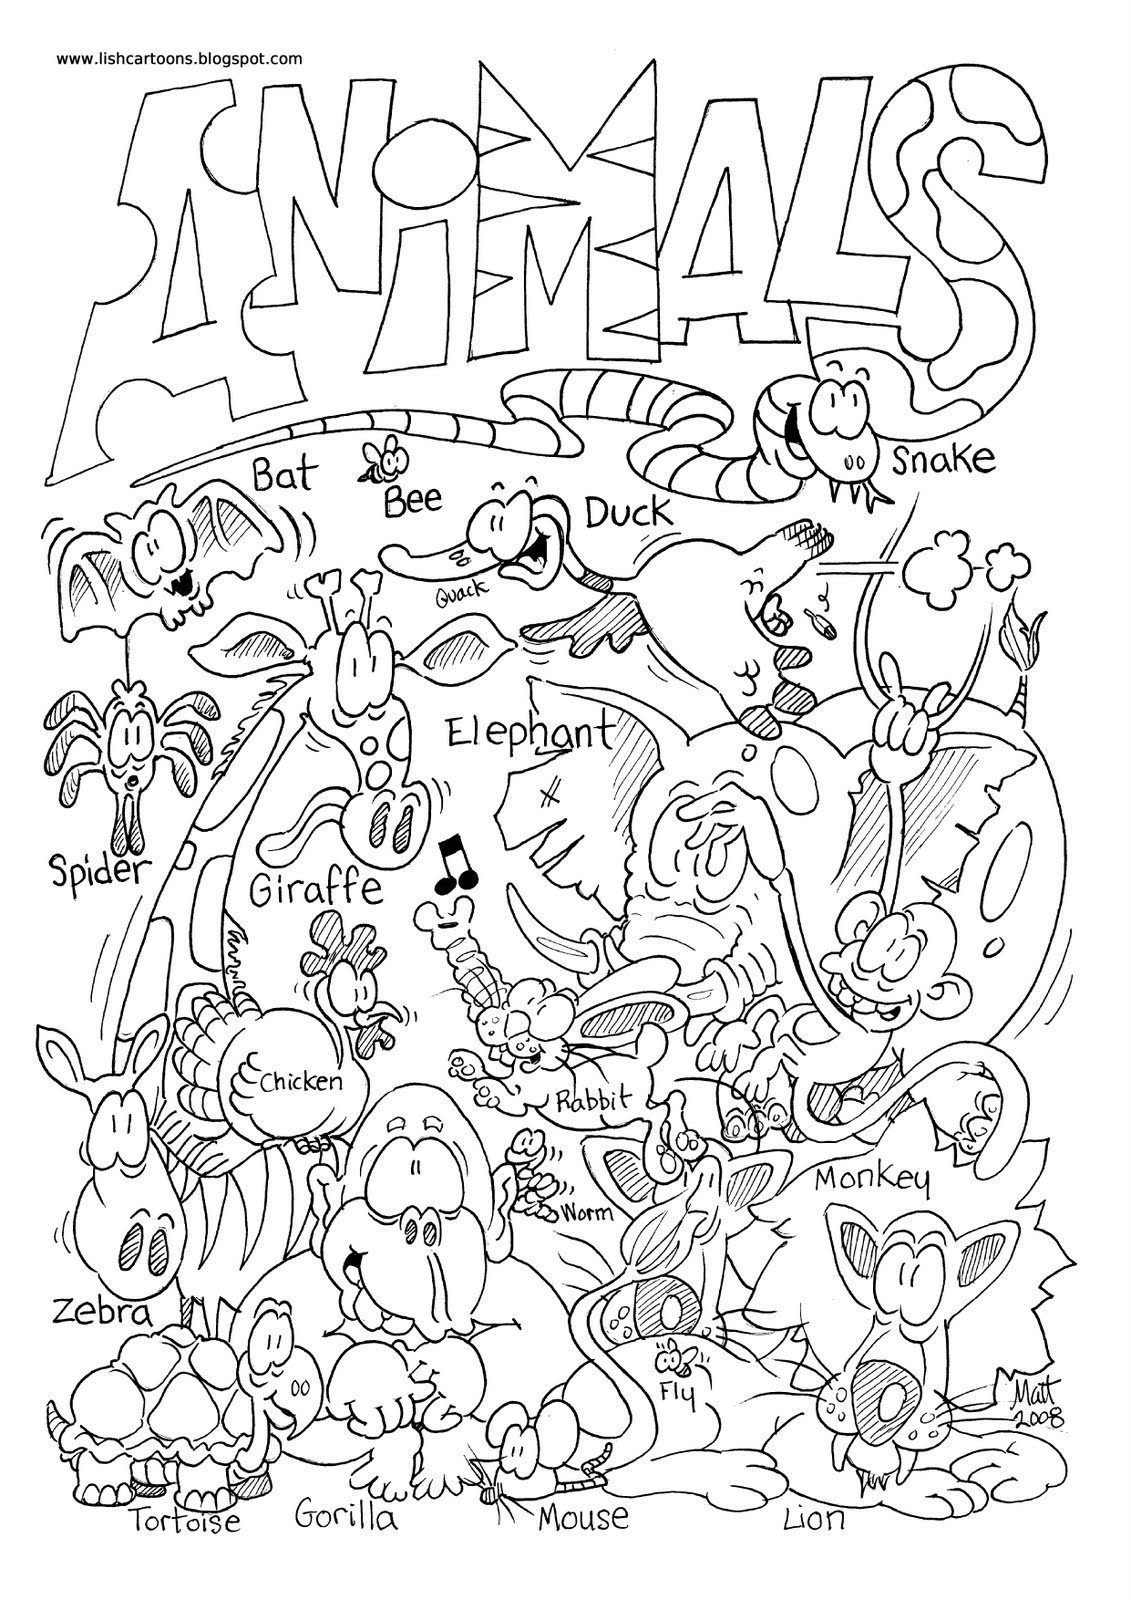 zoo coloring pictures for preschool free printable zoo coloring pages for kids in 2020 zoo for pictures zoo coloring preschool